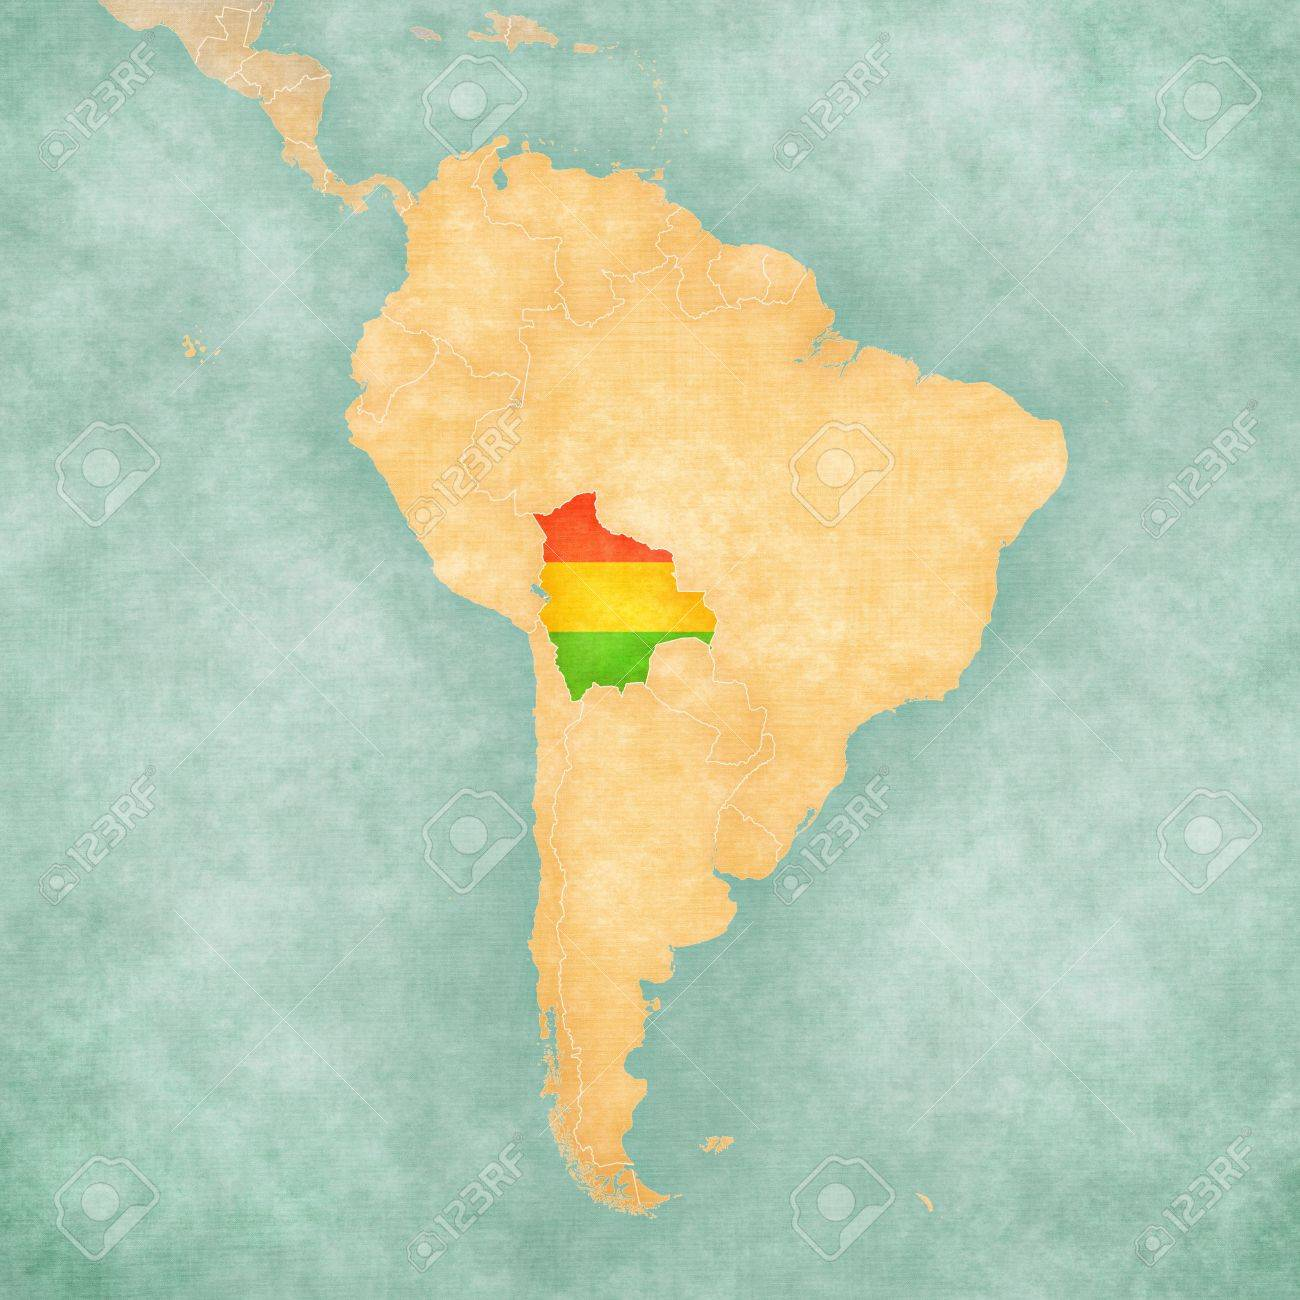 Bolivia Bolivian Flag On The Map Of South America The Map Stock - South america map and flags